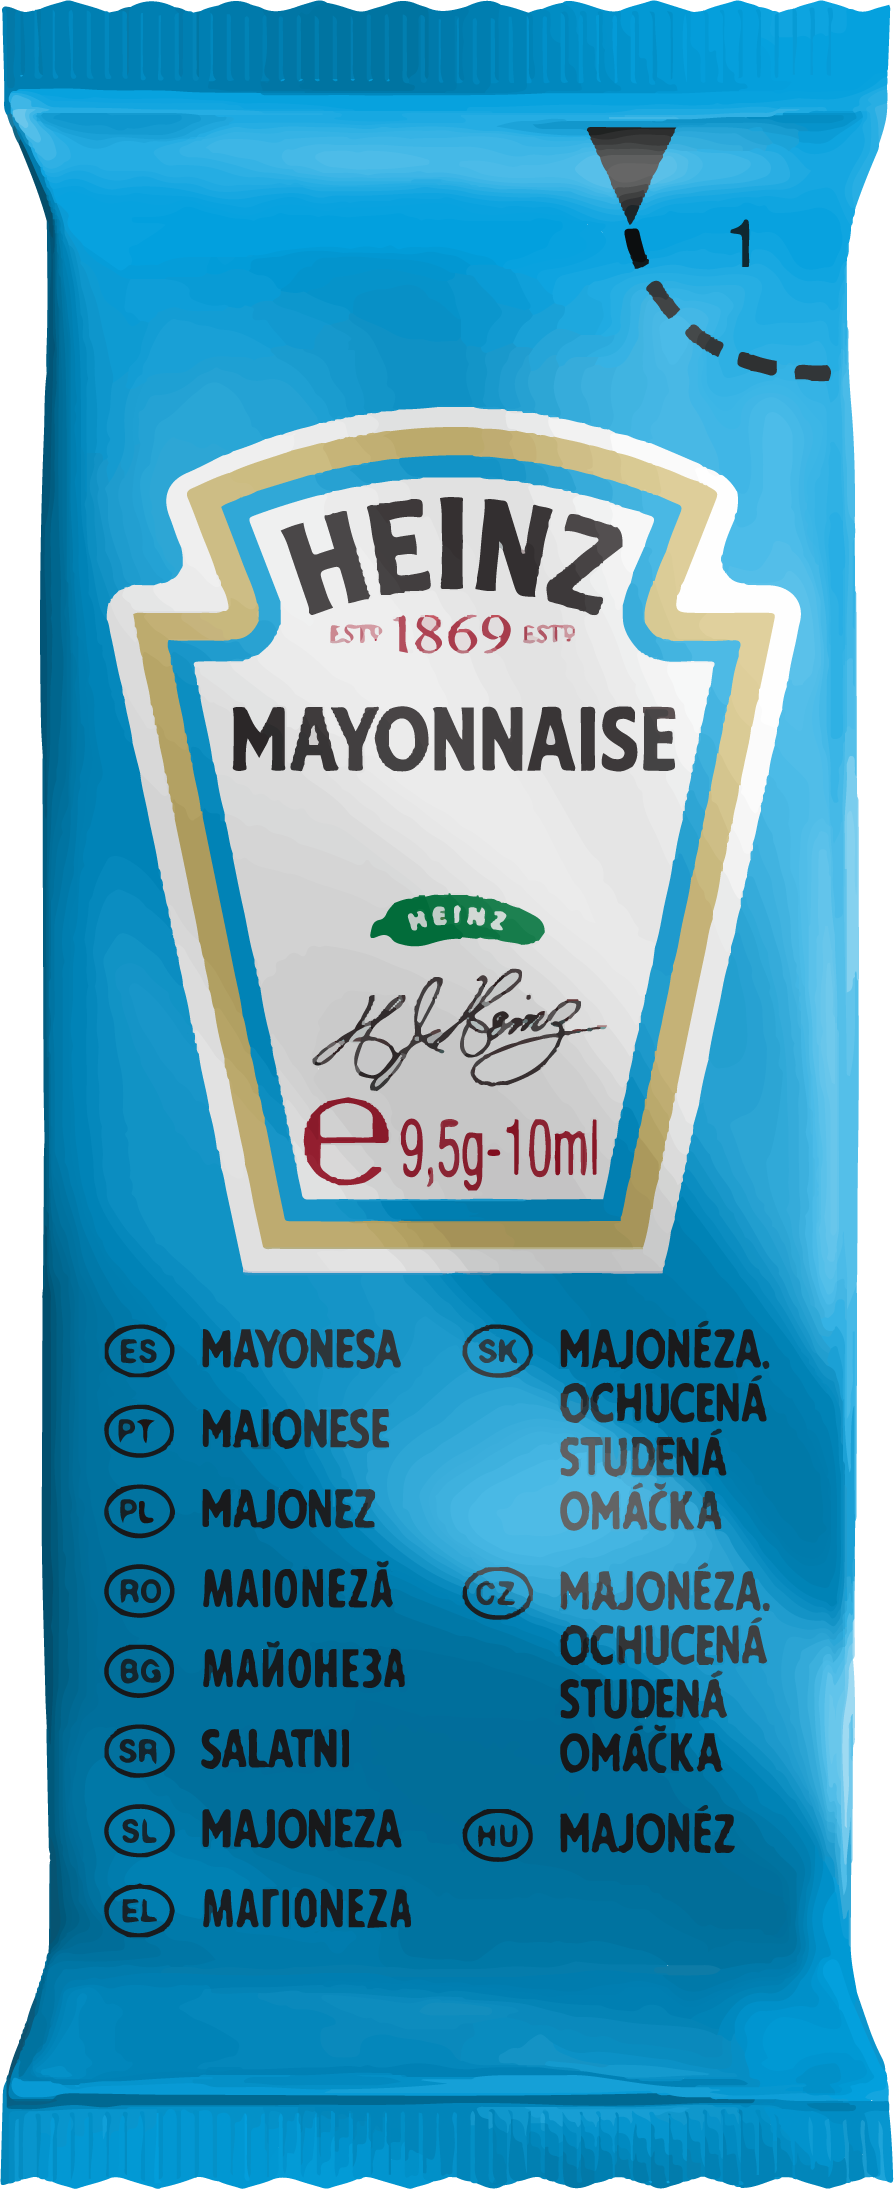 Heinz Mayonnaise 10ml image